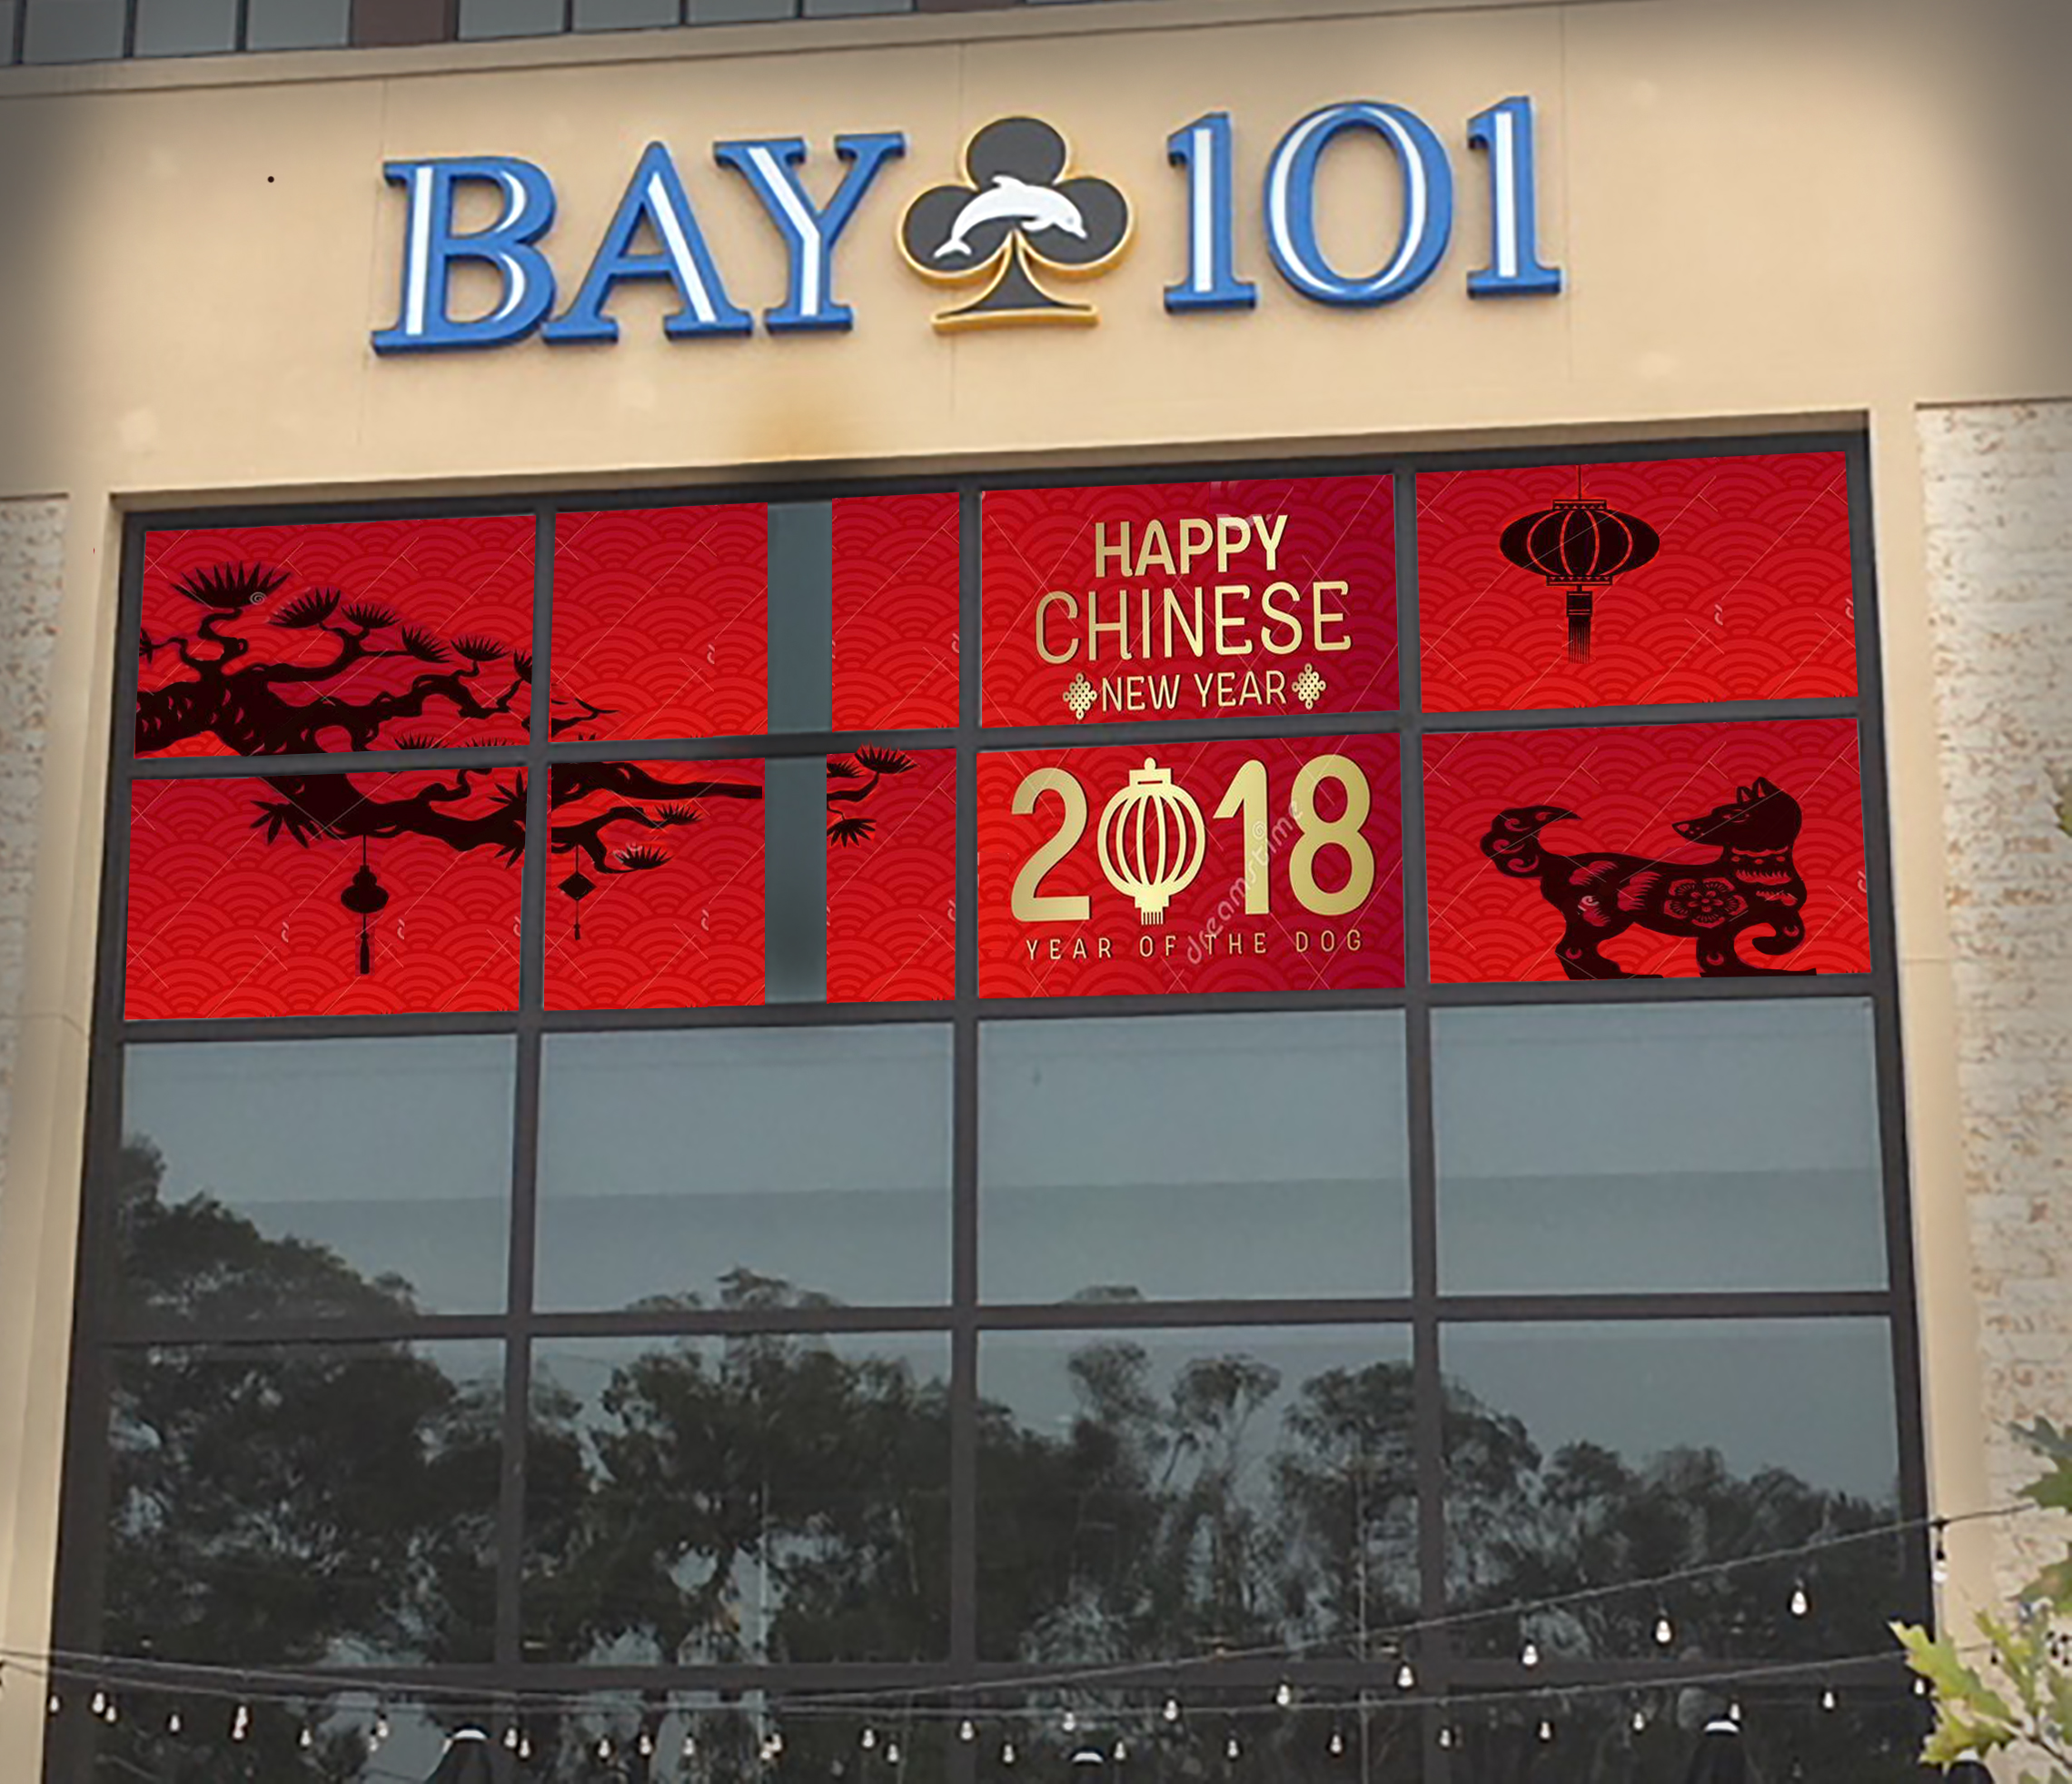 bay 101 window concept